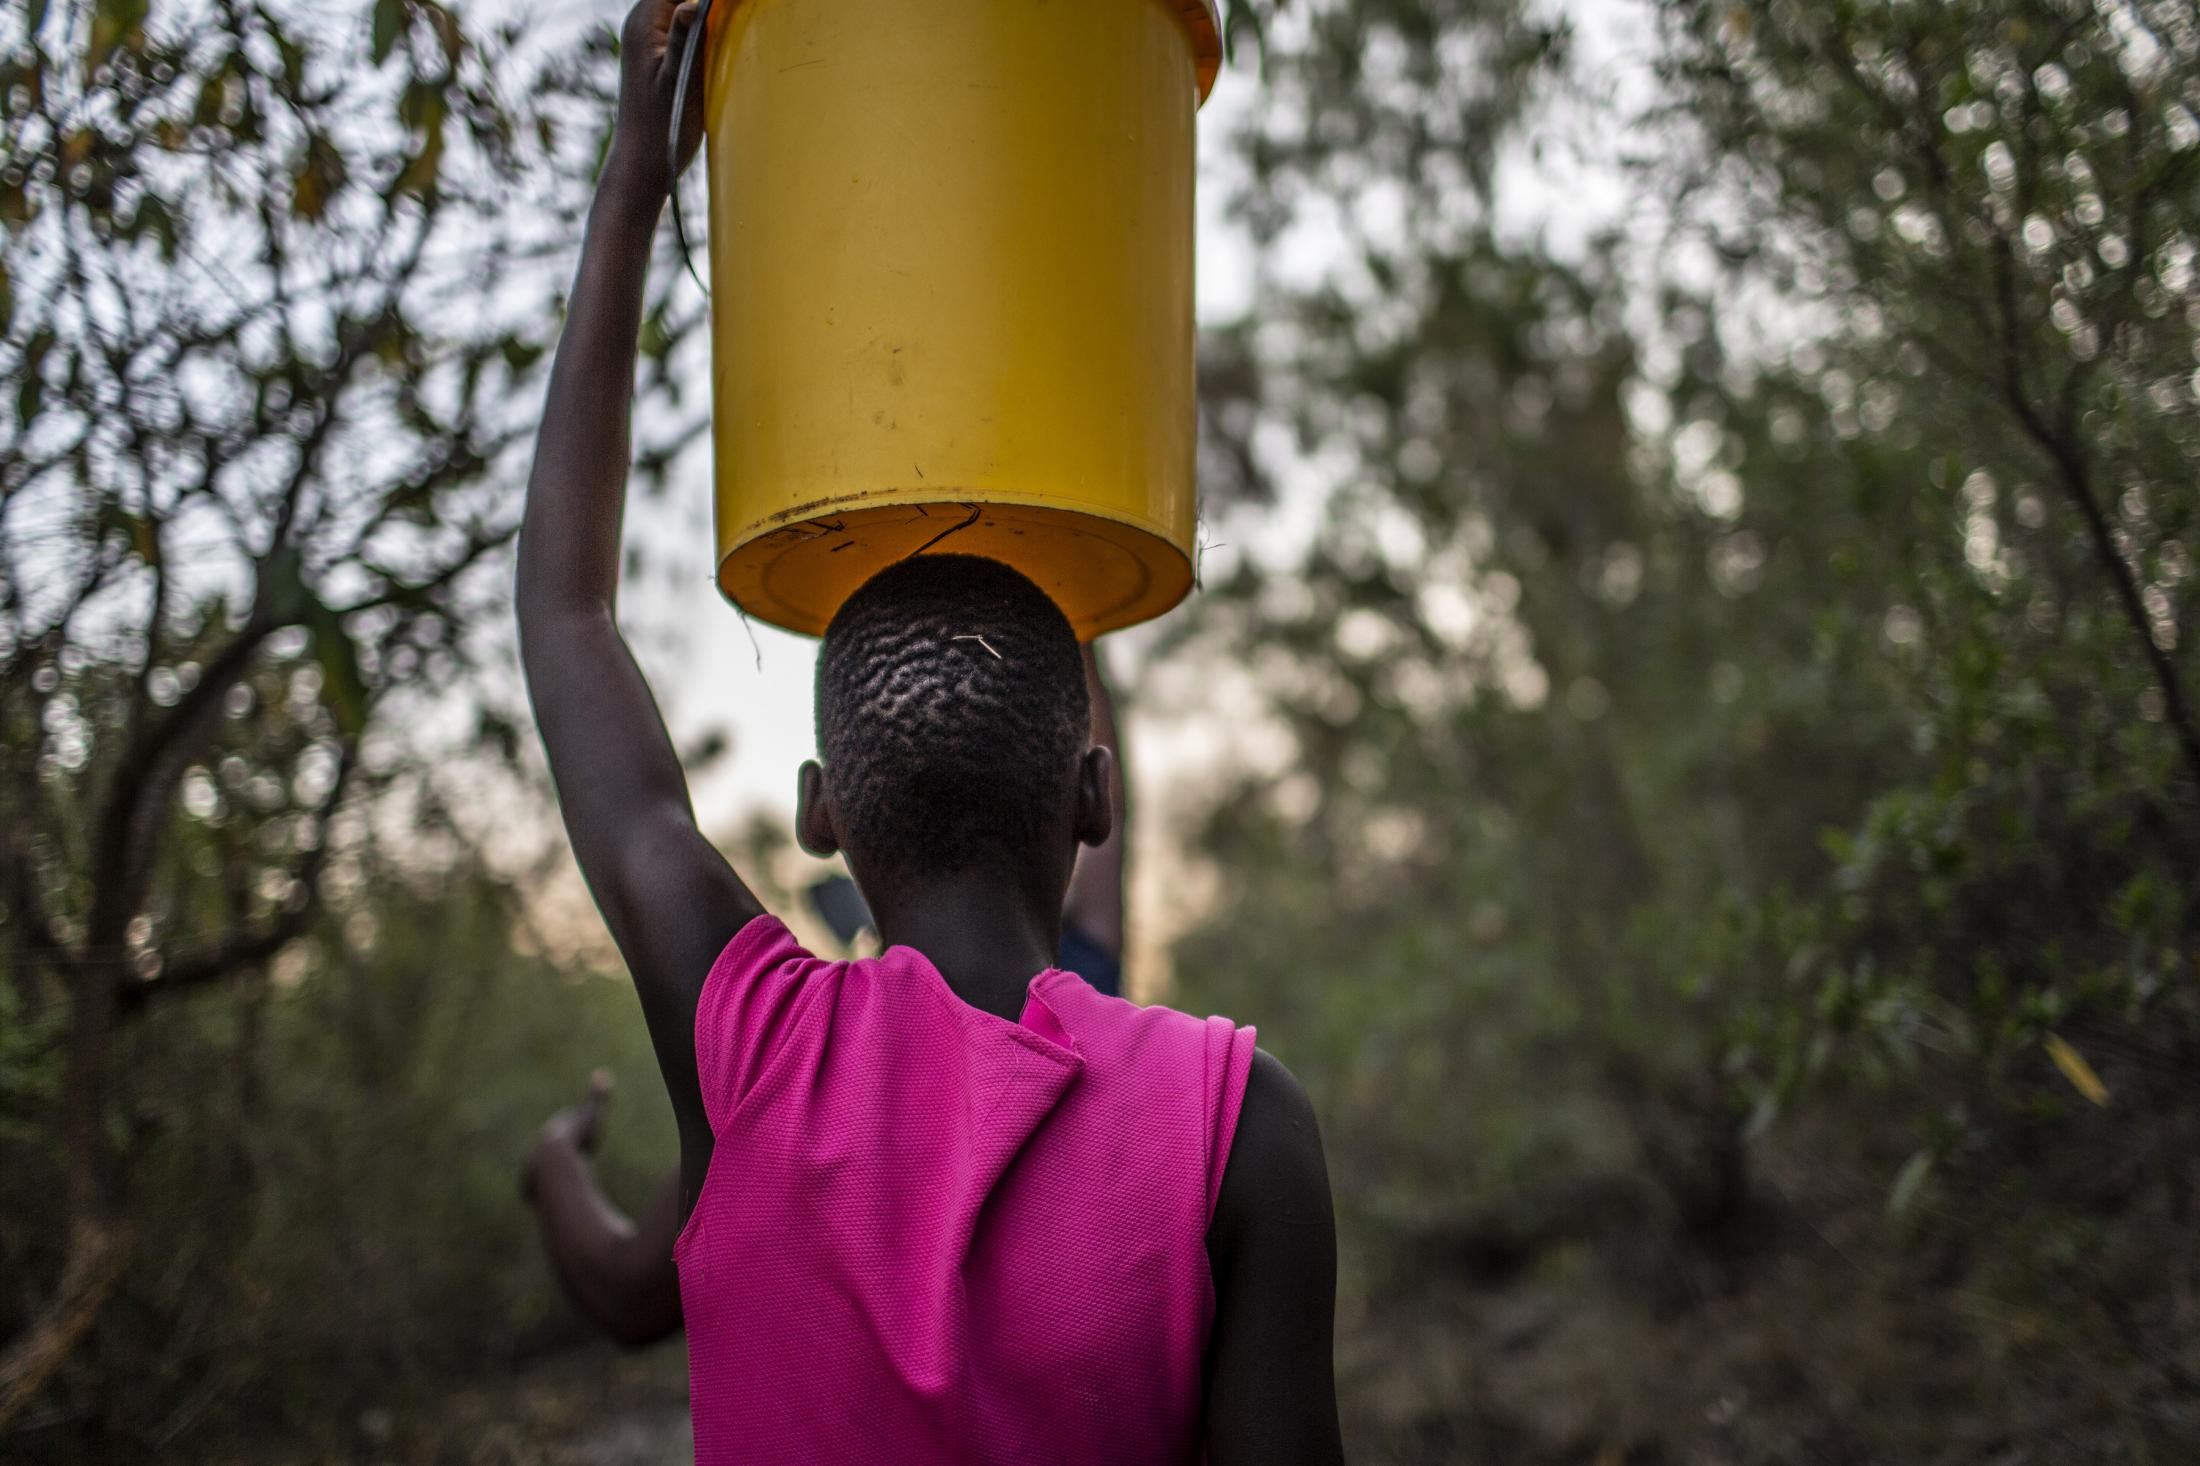 Lana Fariva (14) walks to fetch water in Masvingo, Zimbabwe on October 07, 2019. The family has no electricity or water at home and have to walk for over a km to a spring to fetch water everyday. They have no choice but to use this for drinking and cooking as well, so it will be boiled.